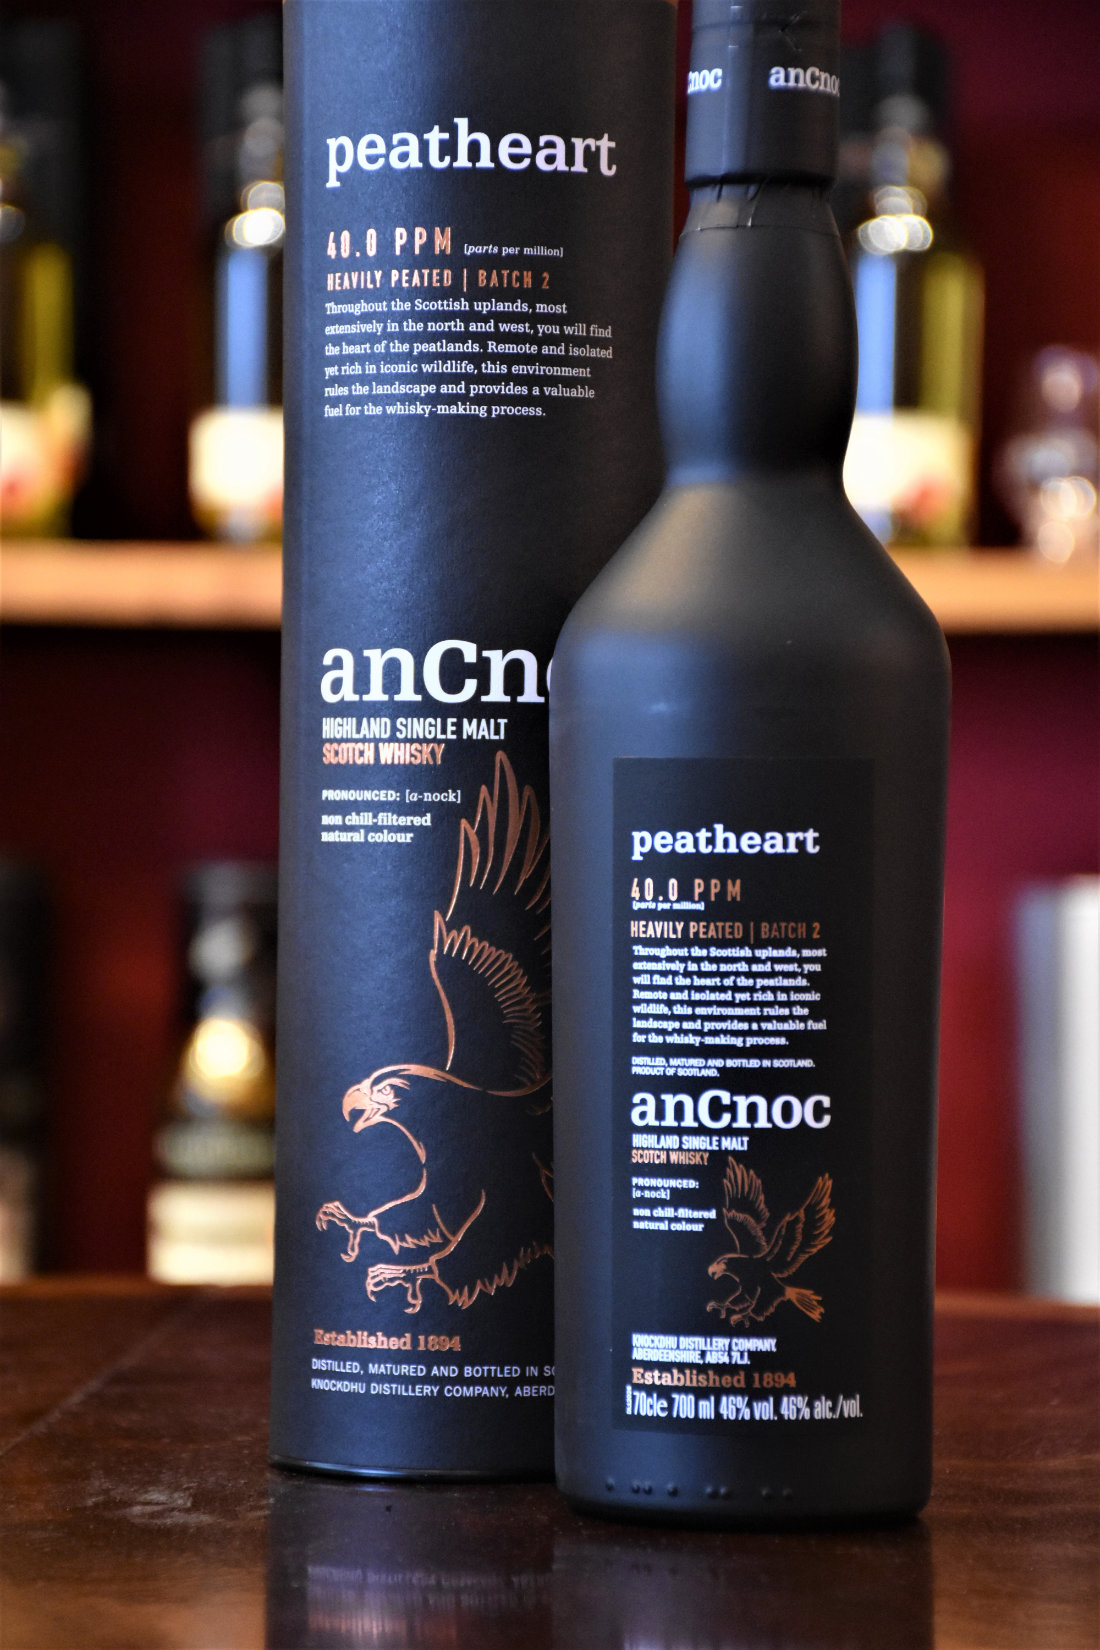 AnCnoc Peathart, Batch 2, Heavily Peated, 46% Alc.Vol.,Distillery Original Bottling, Knockdhu